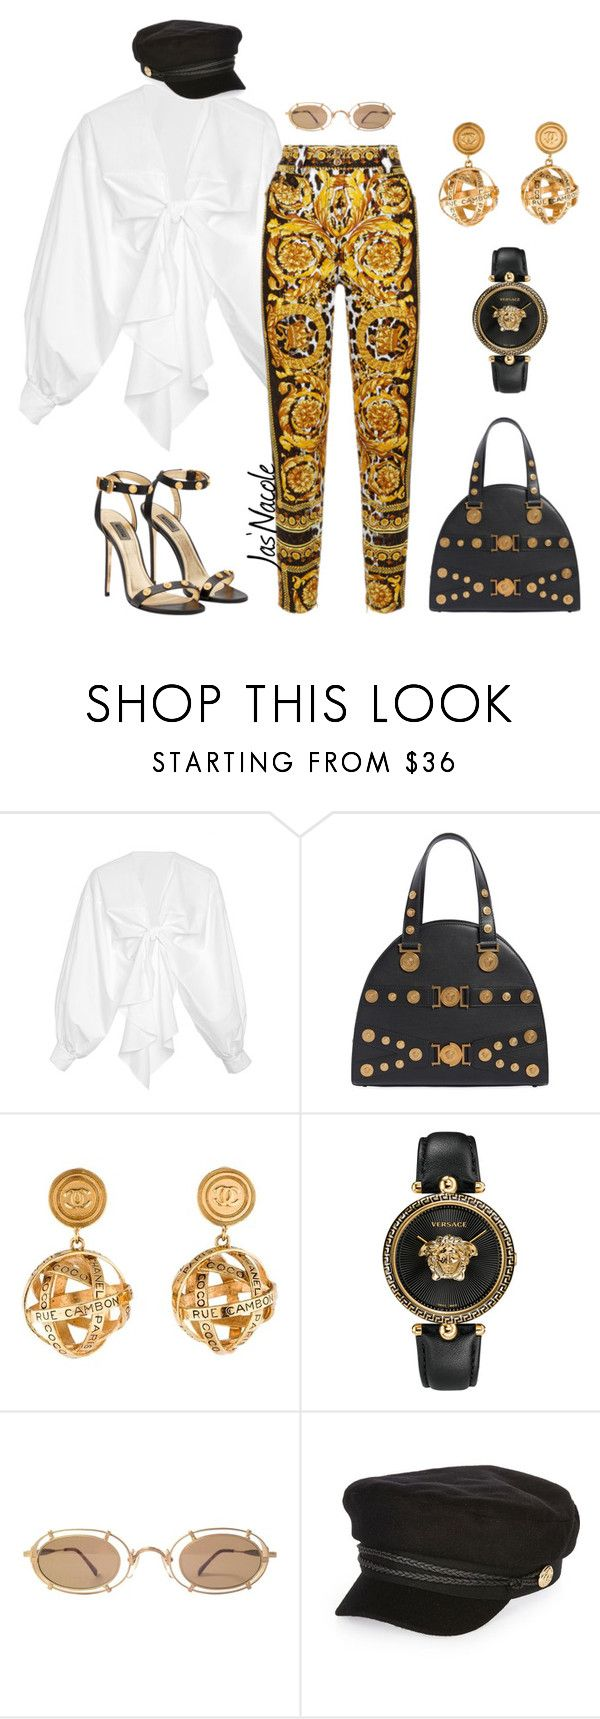 """Jas'Nacole1169"" by jasnacole ❤ liked on Polyvore featuring Johanna Ortiz, Versace, Chanel and River Island"